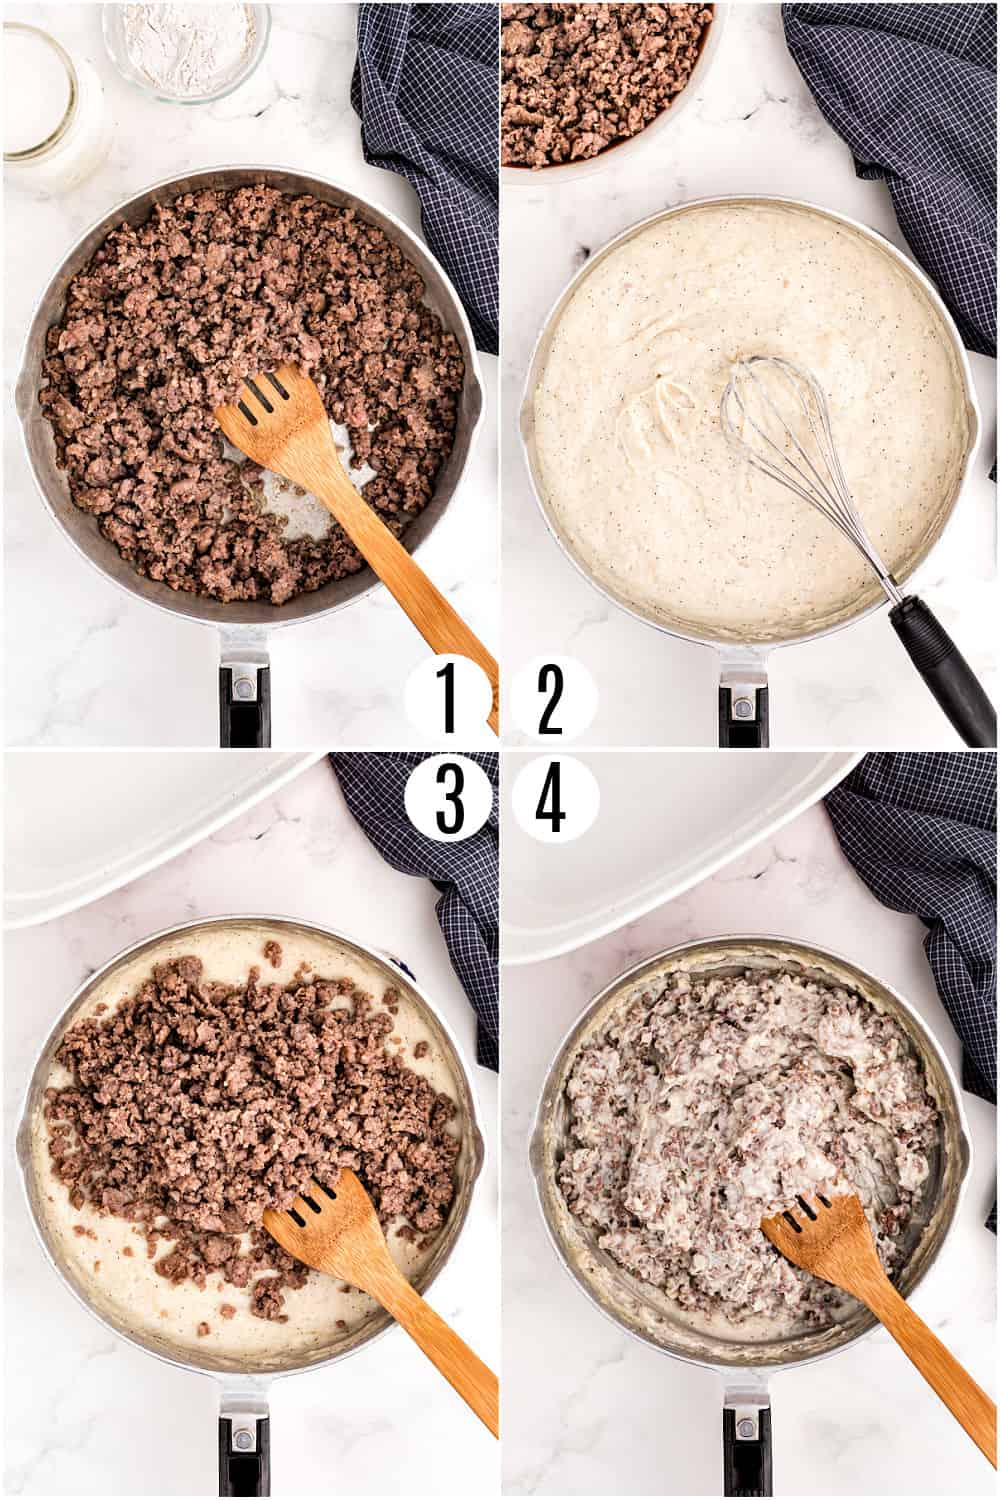 Step by step photos showing how to make sausage gravy.